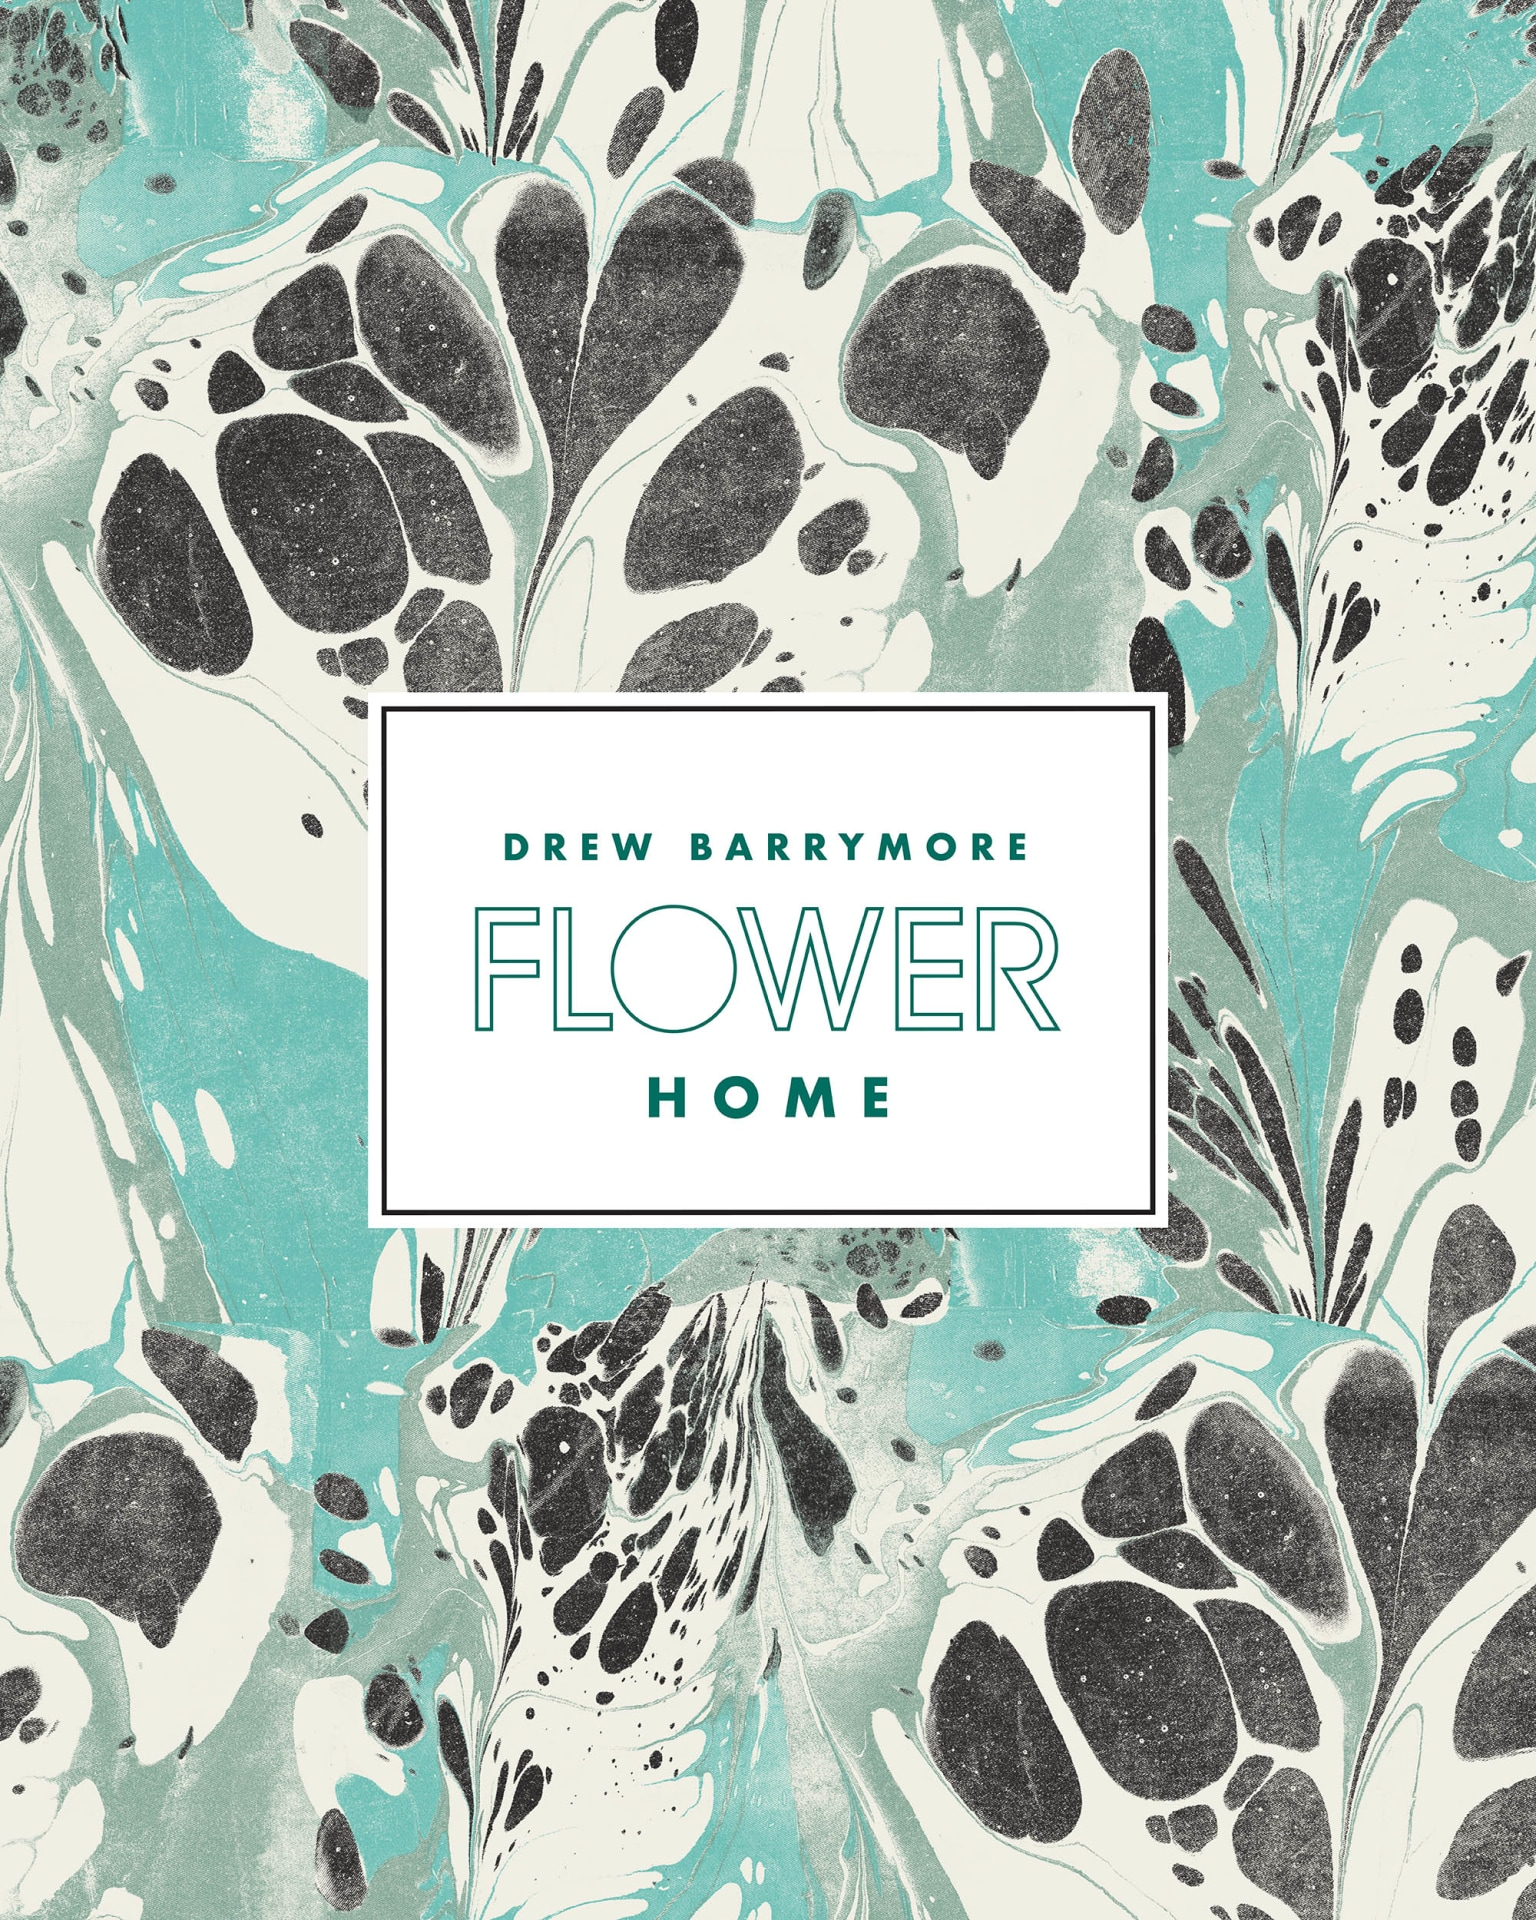 Flower Home By Drew Barrymore